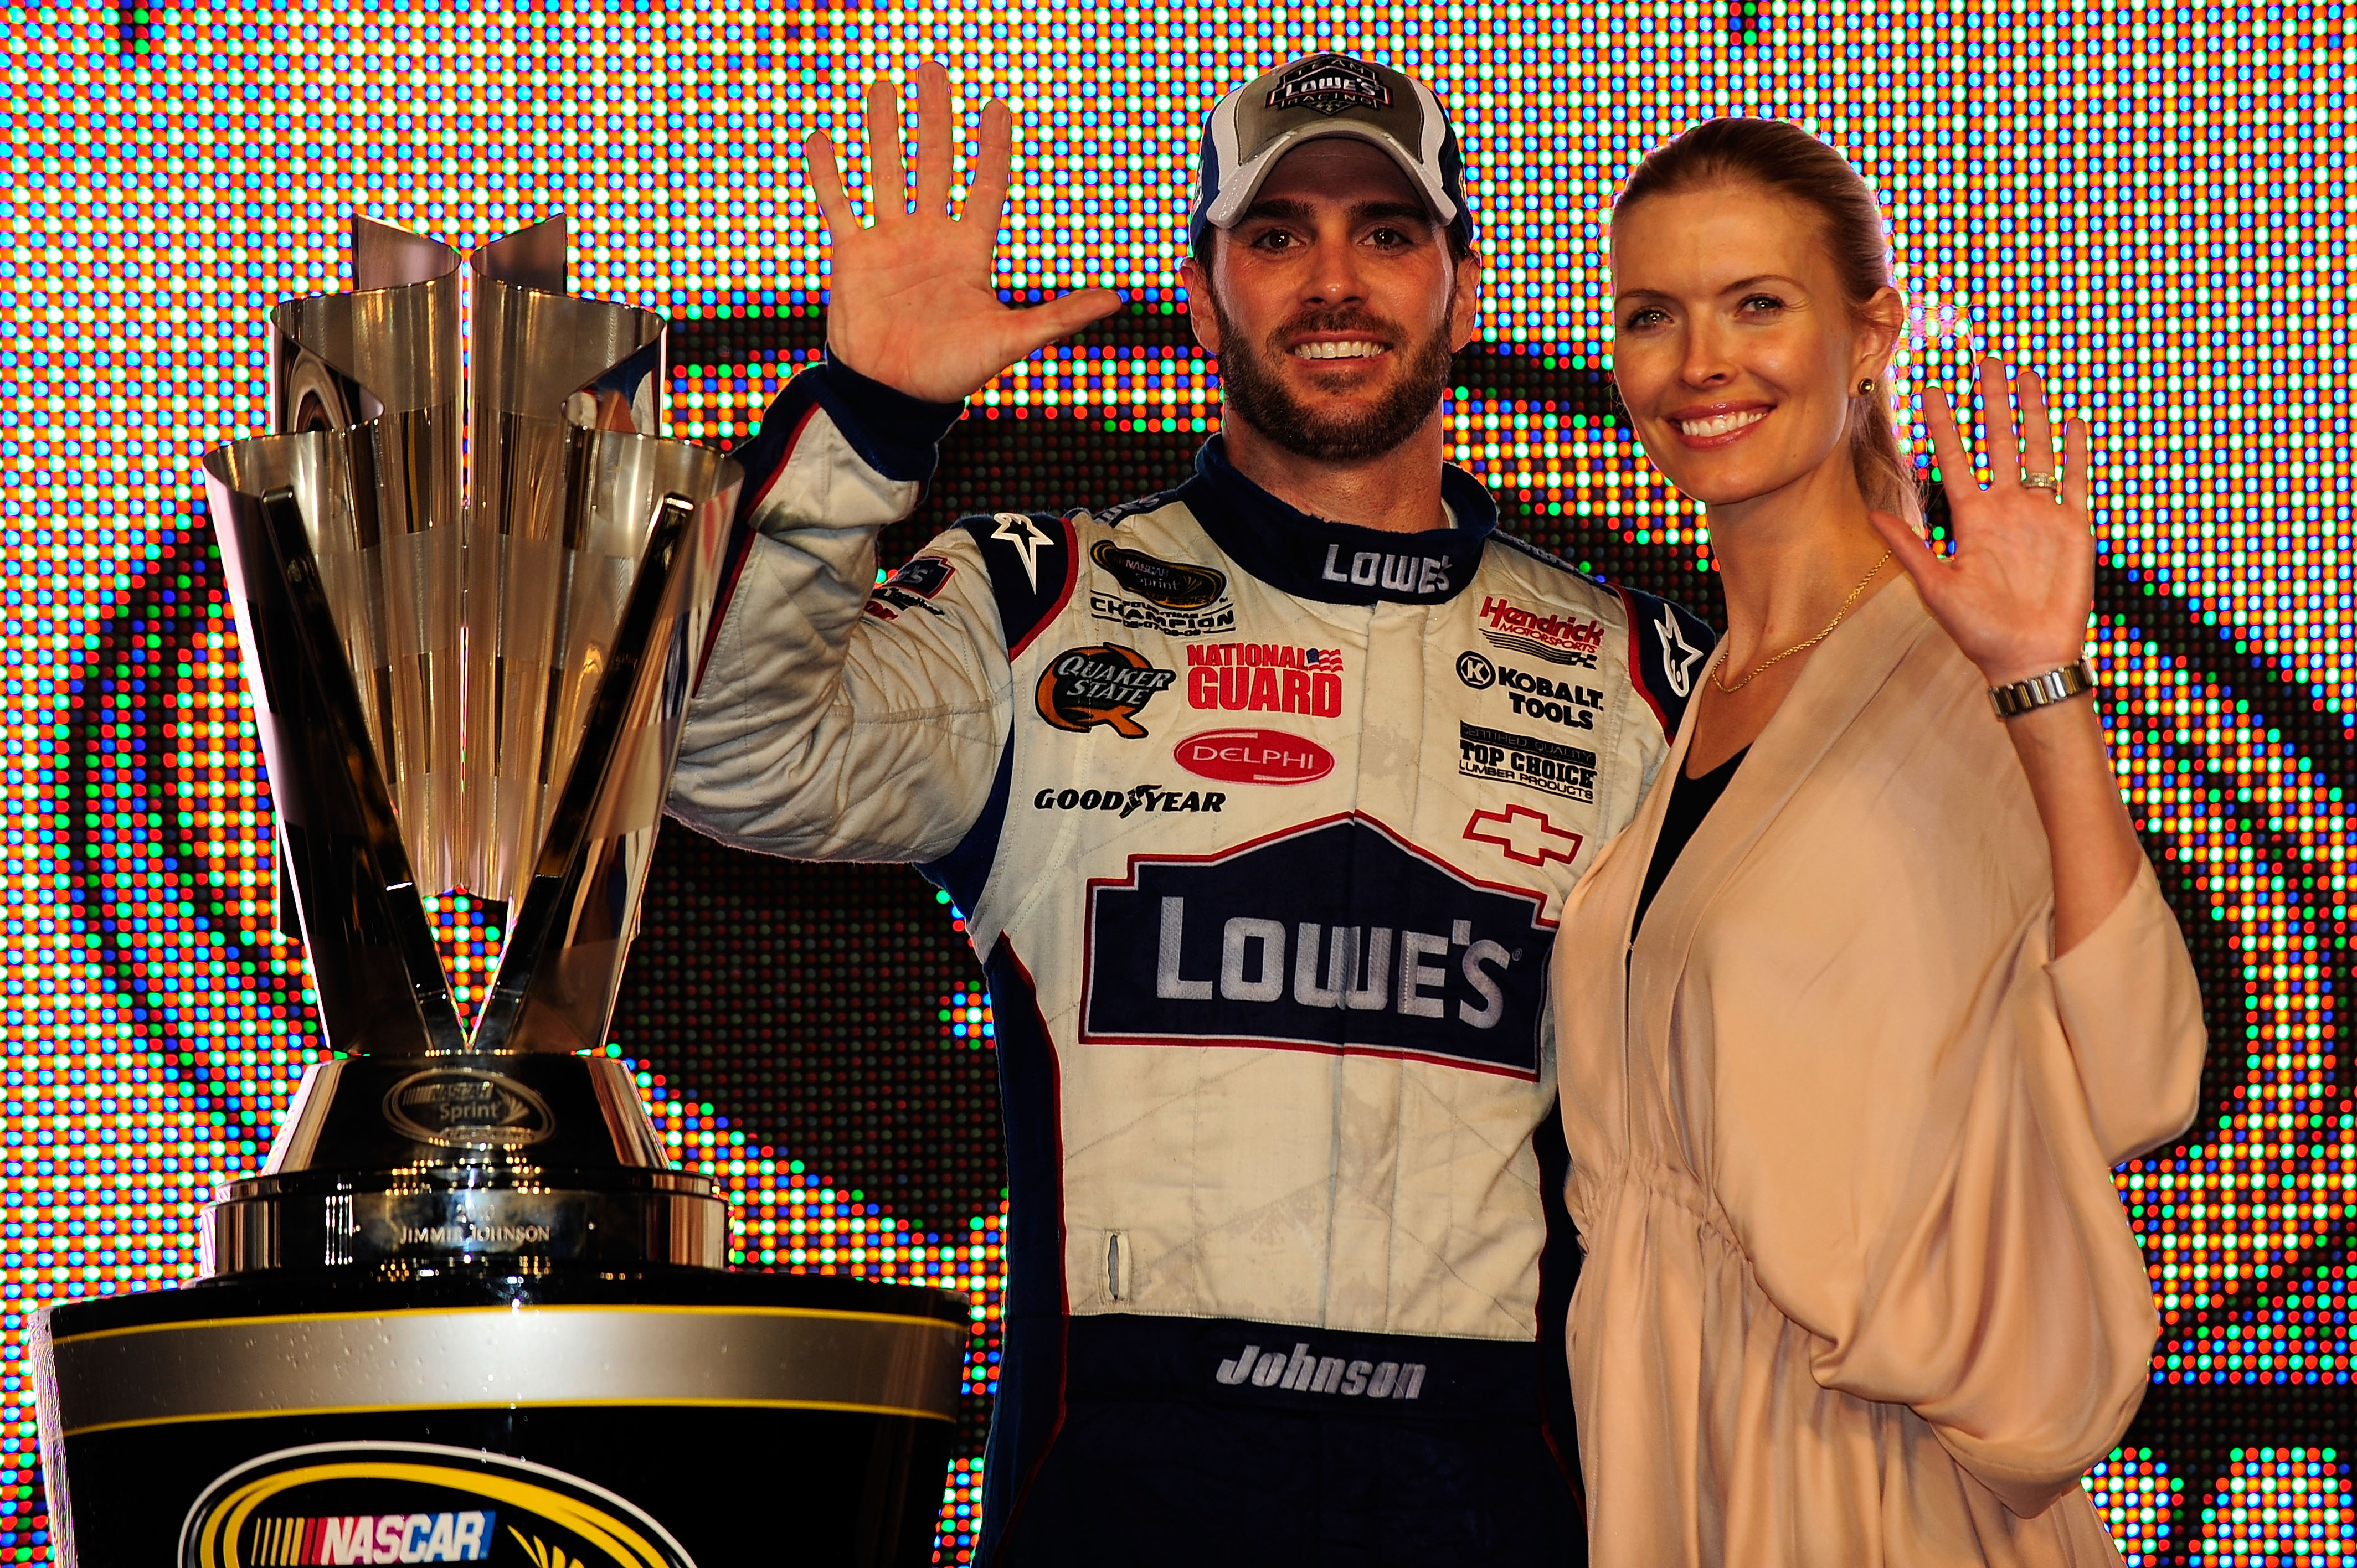 HOMESTEAD, FL - NOVEMBER 21:  Jimmie Johnson (L), driver of the #48 Lowe's Chevrolet, poses with his wife Chandra after finishing in second place in the Ford 400 to clinch his fifth consecutive NASCAR Sprint Cup championship at Homestead-Miami Speedway on